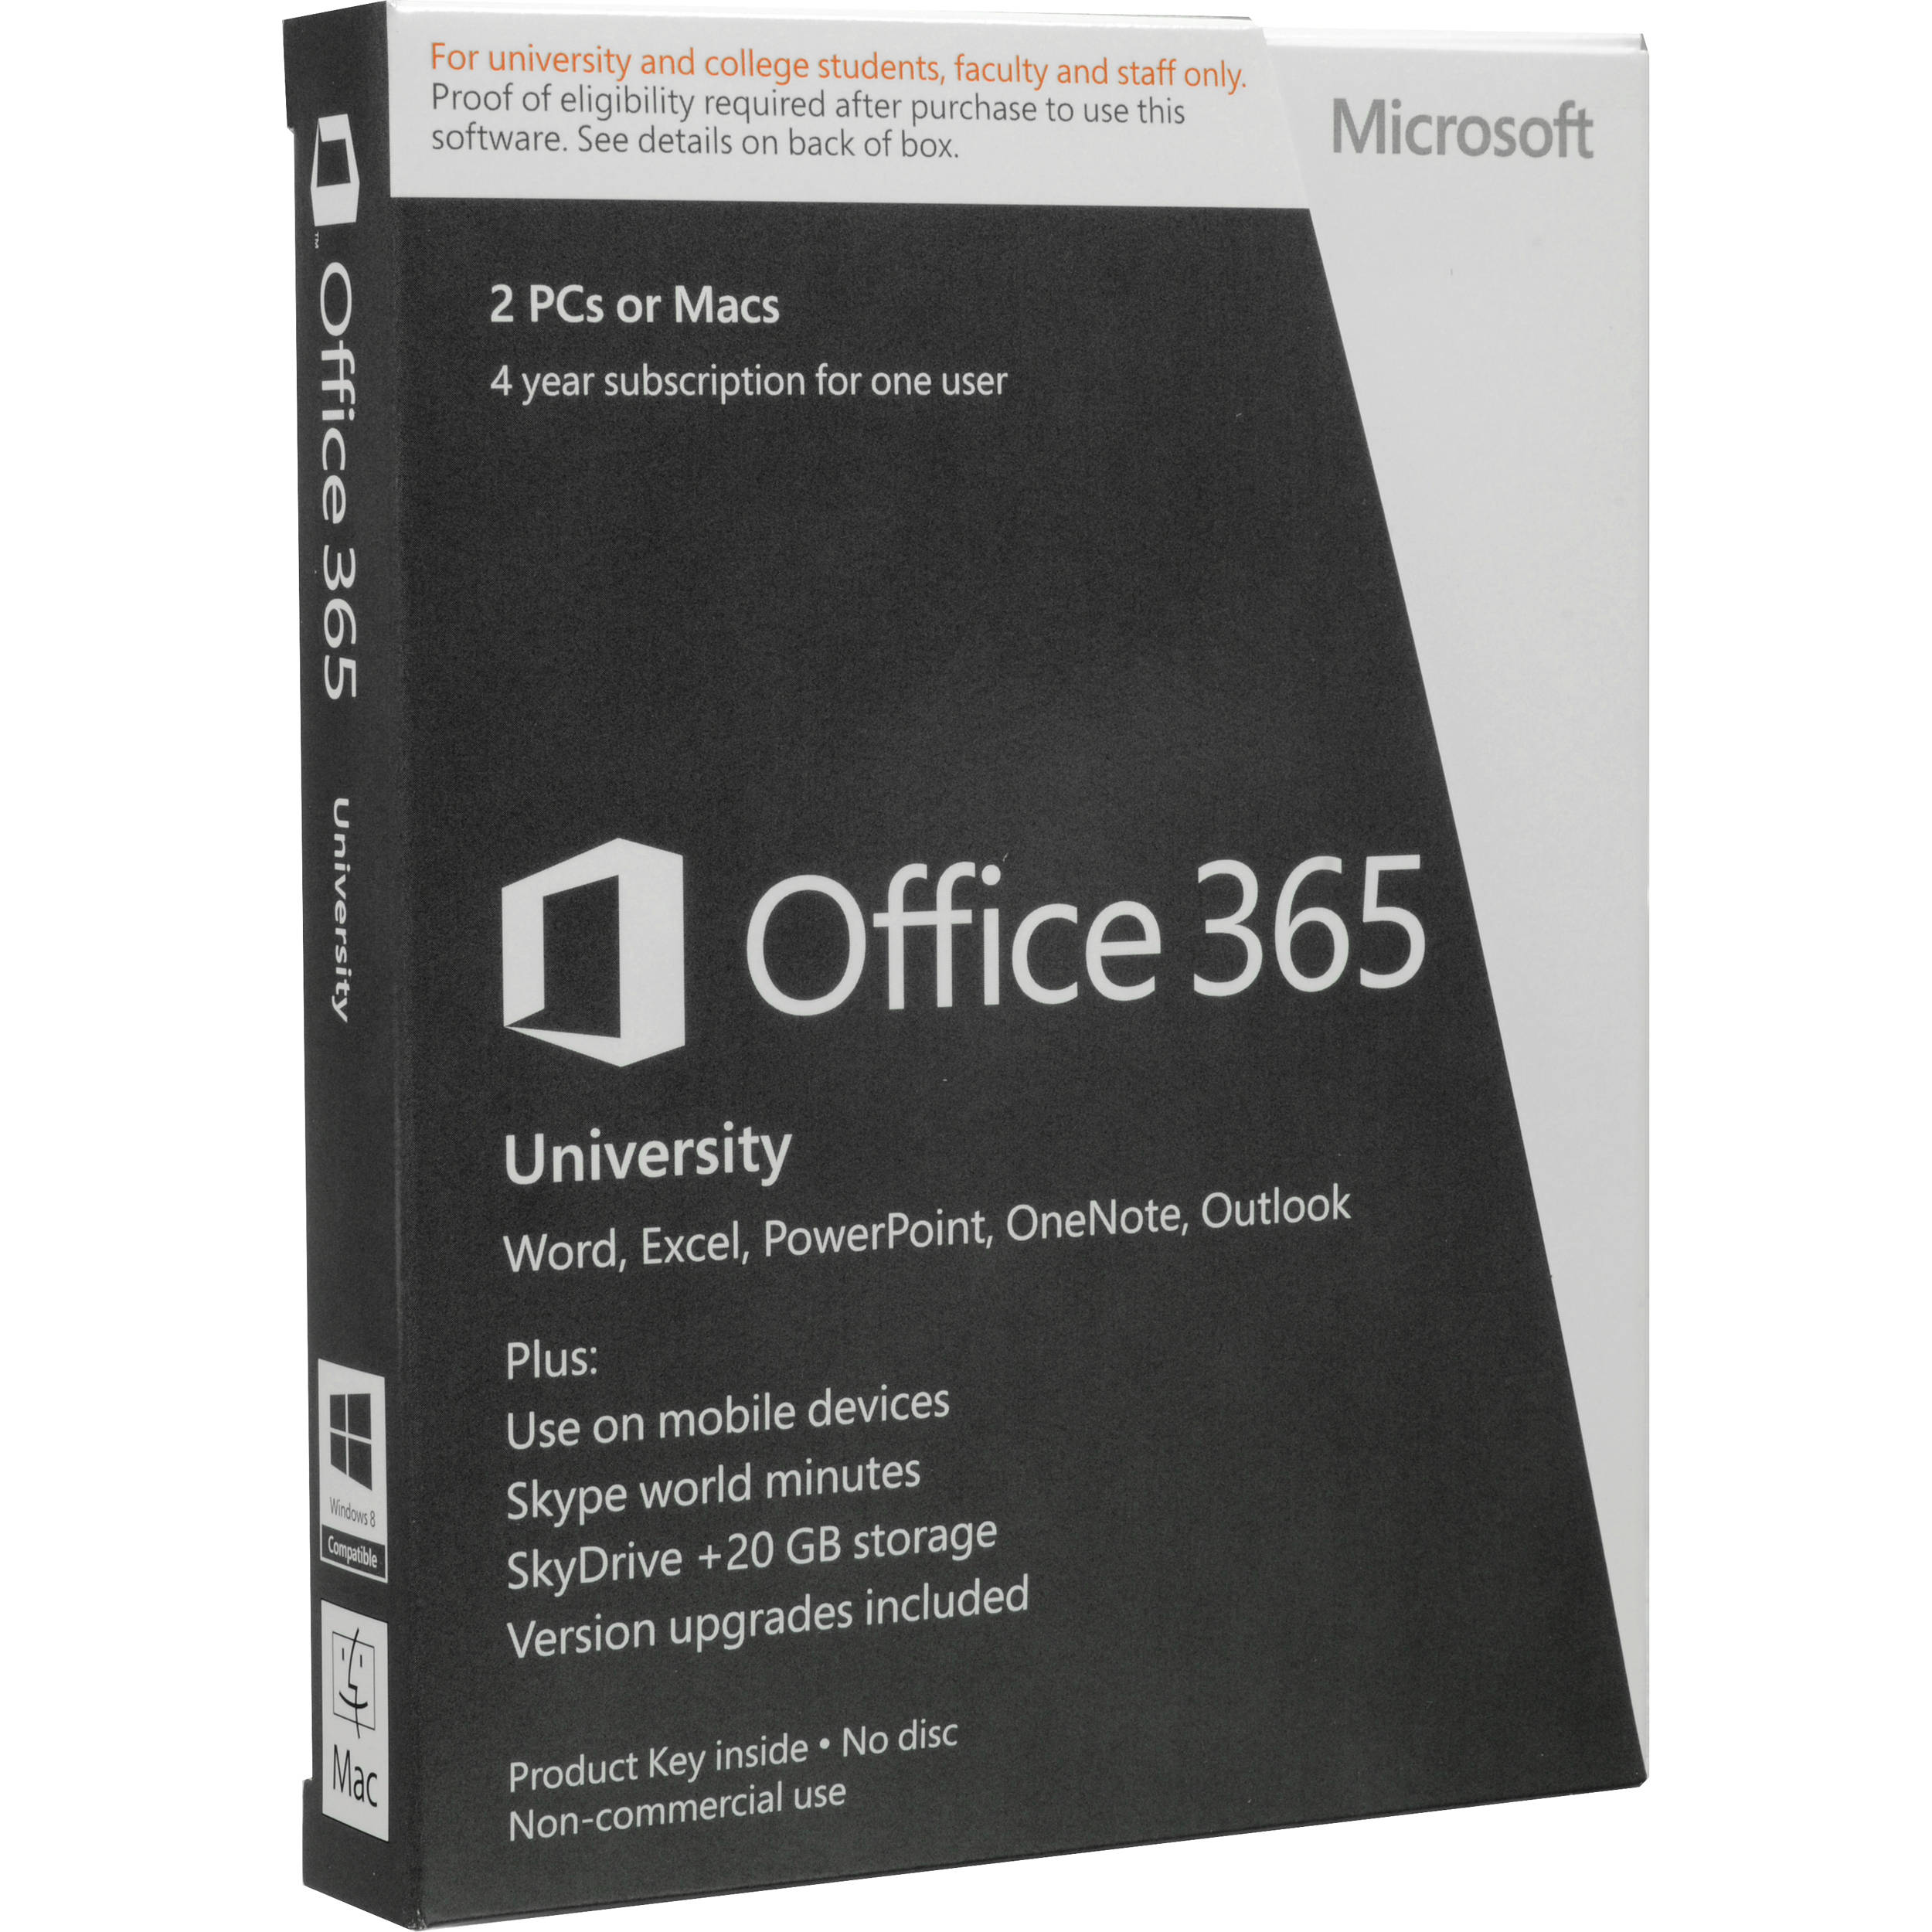 microsoft office 365 university review